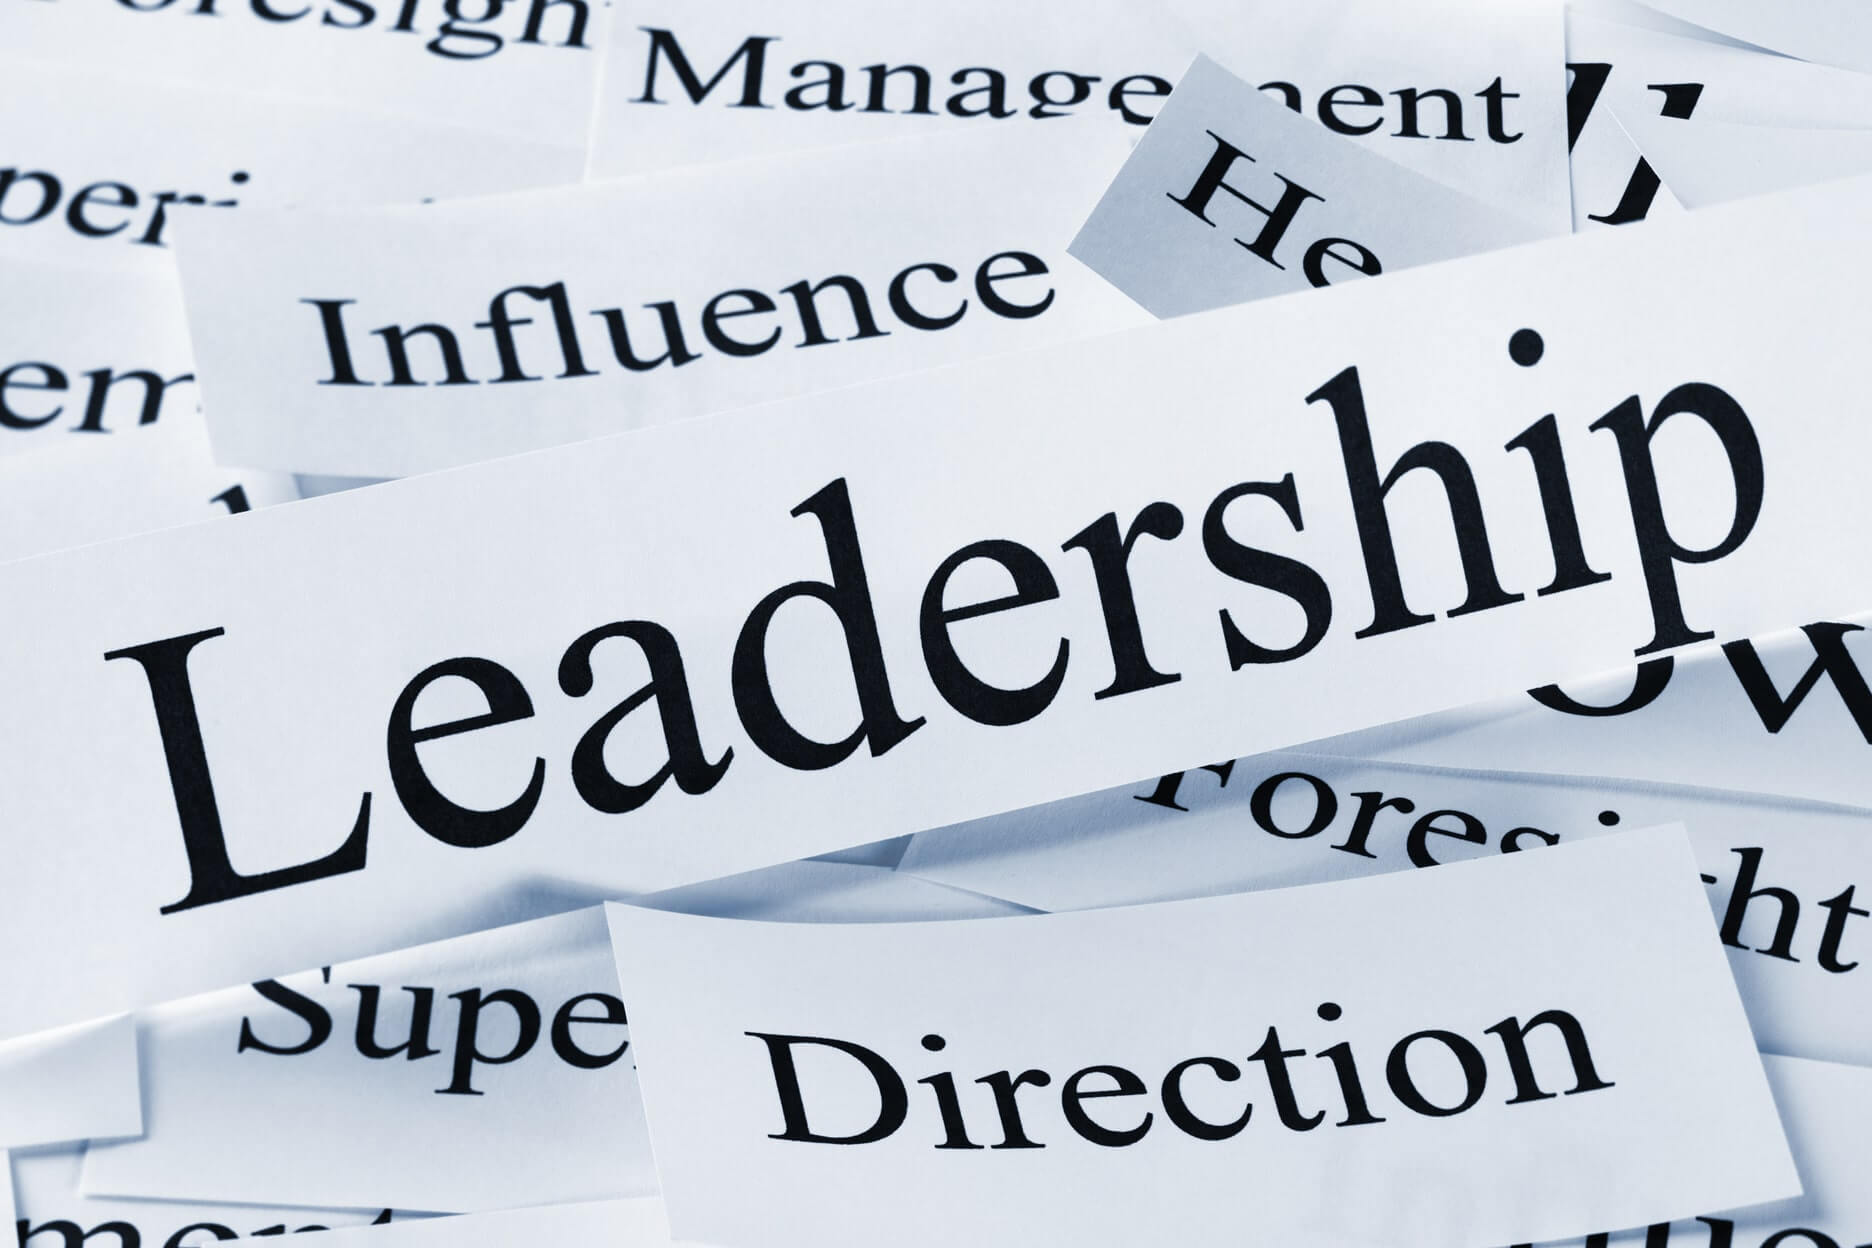 Seven C's of great leadership | peopleHum